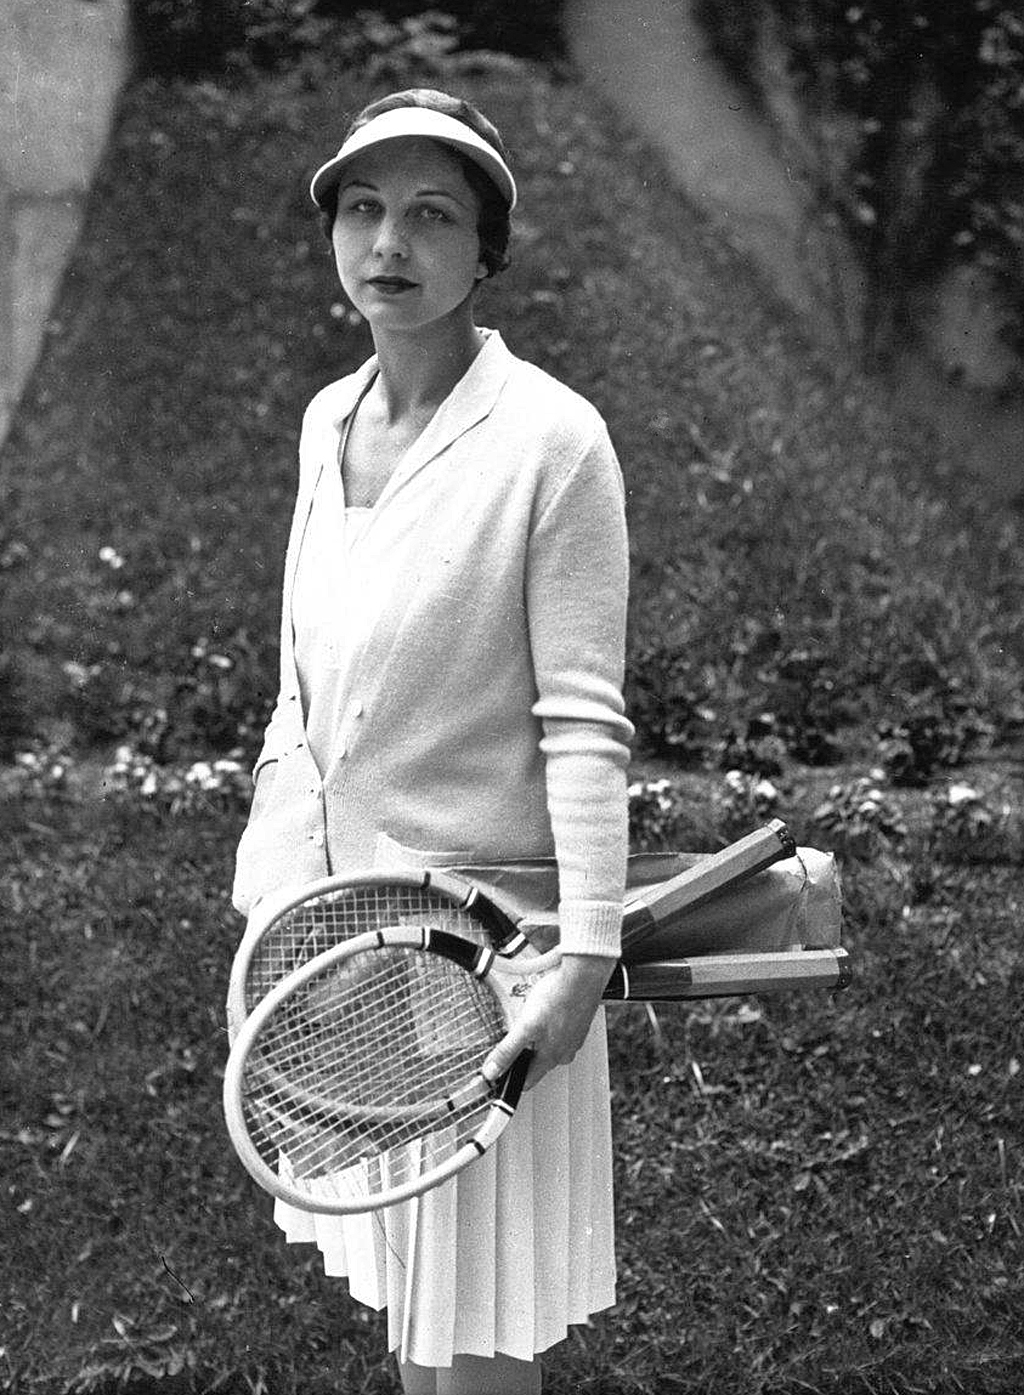 Players World of Tennis Roaring 20s